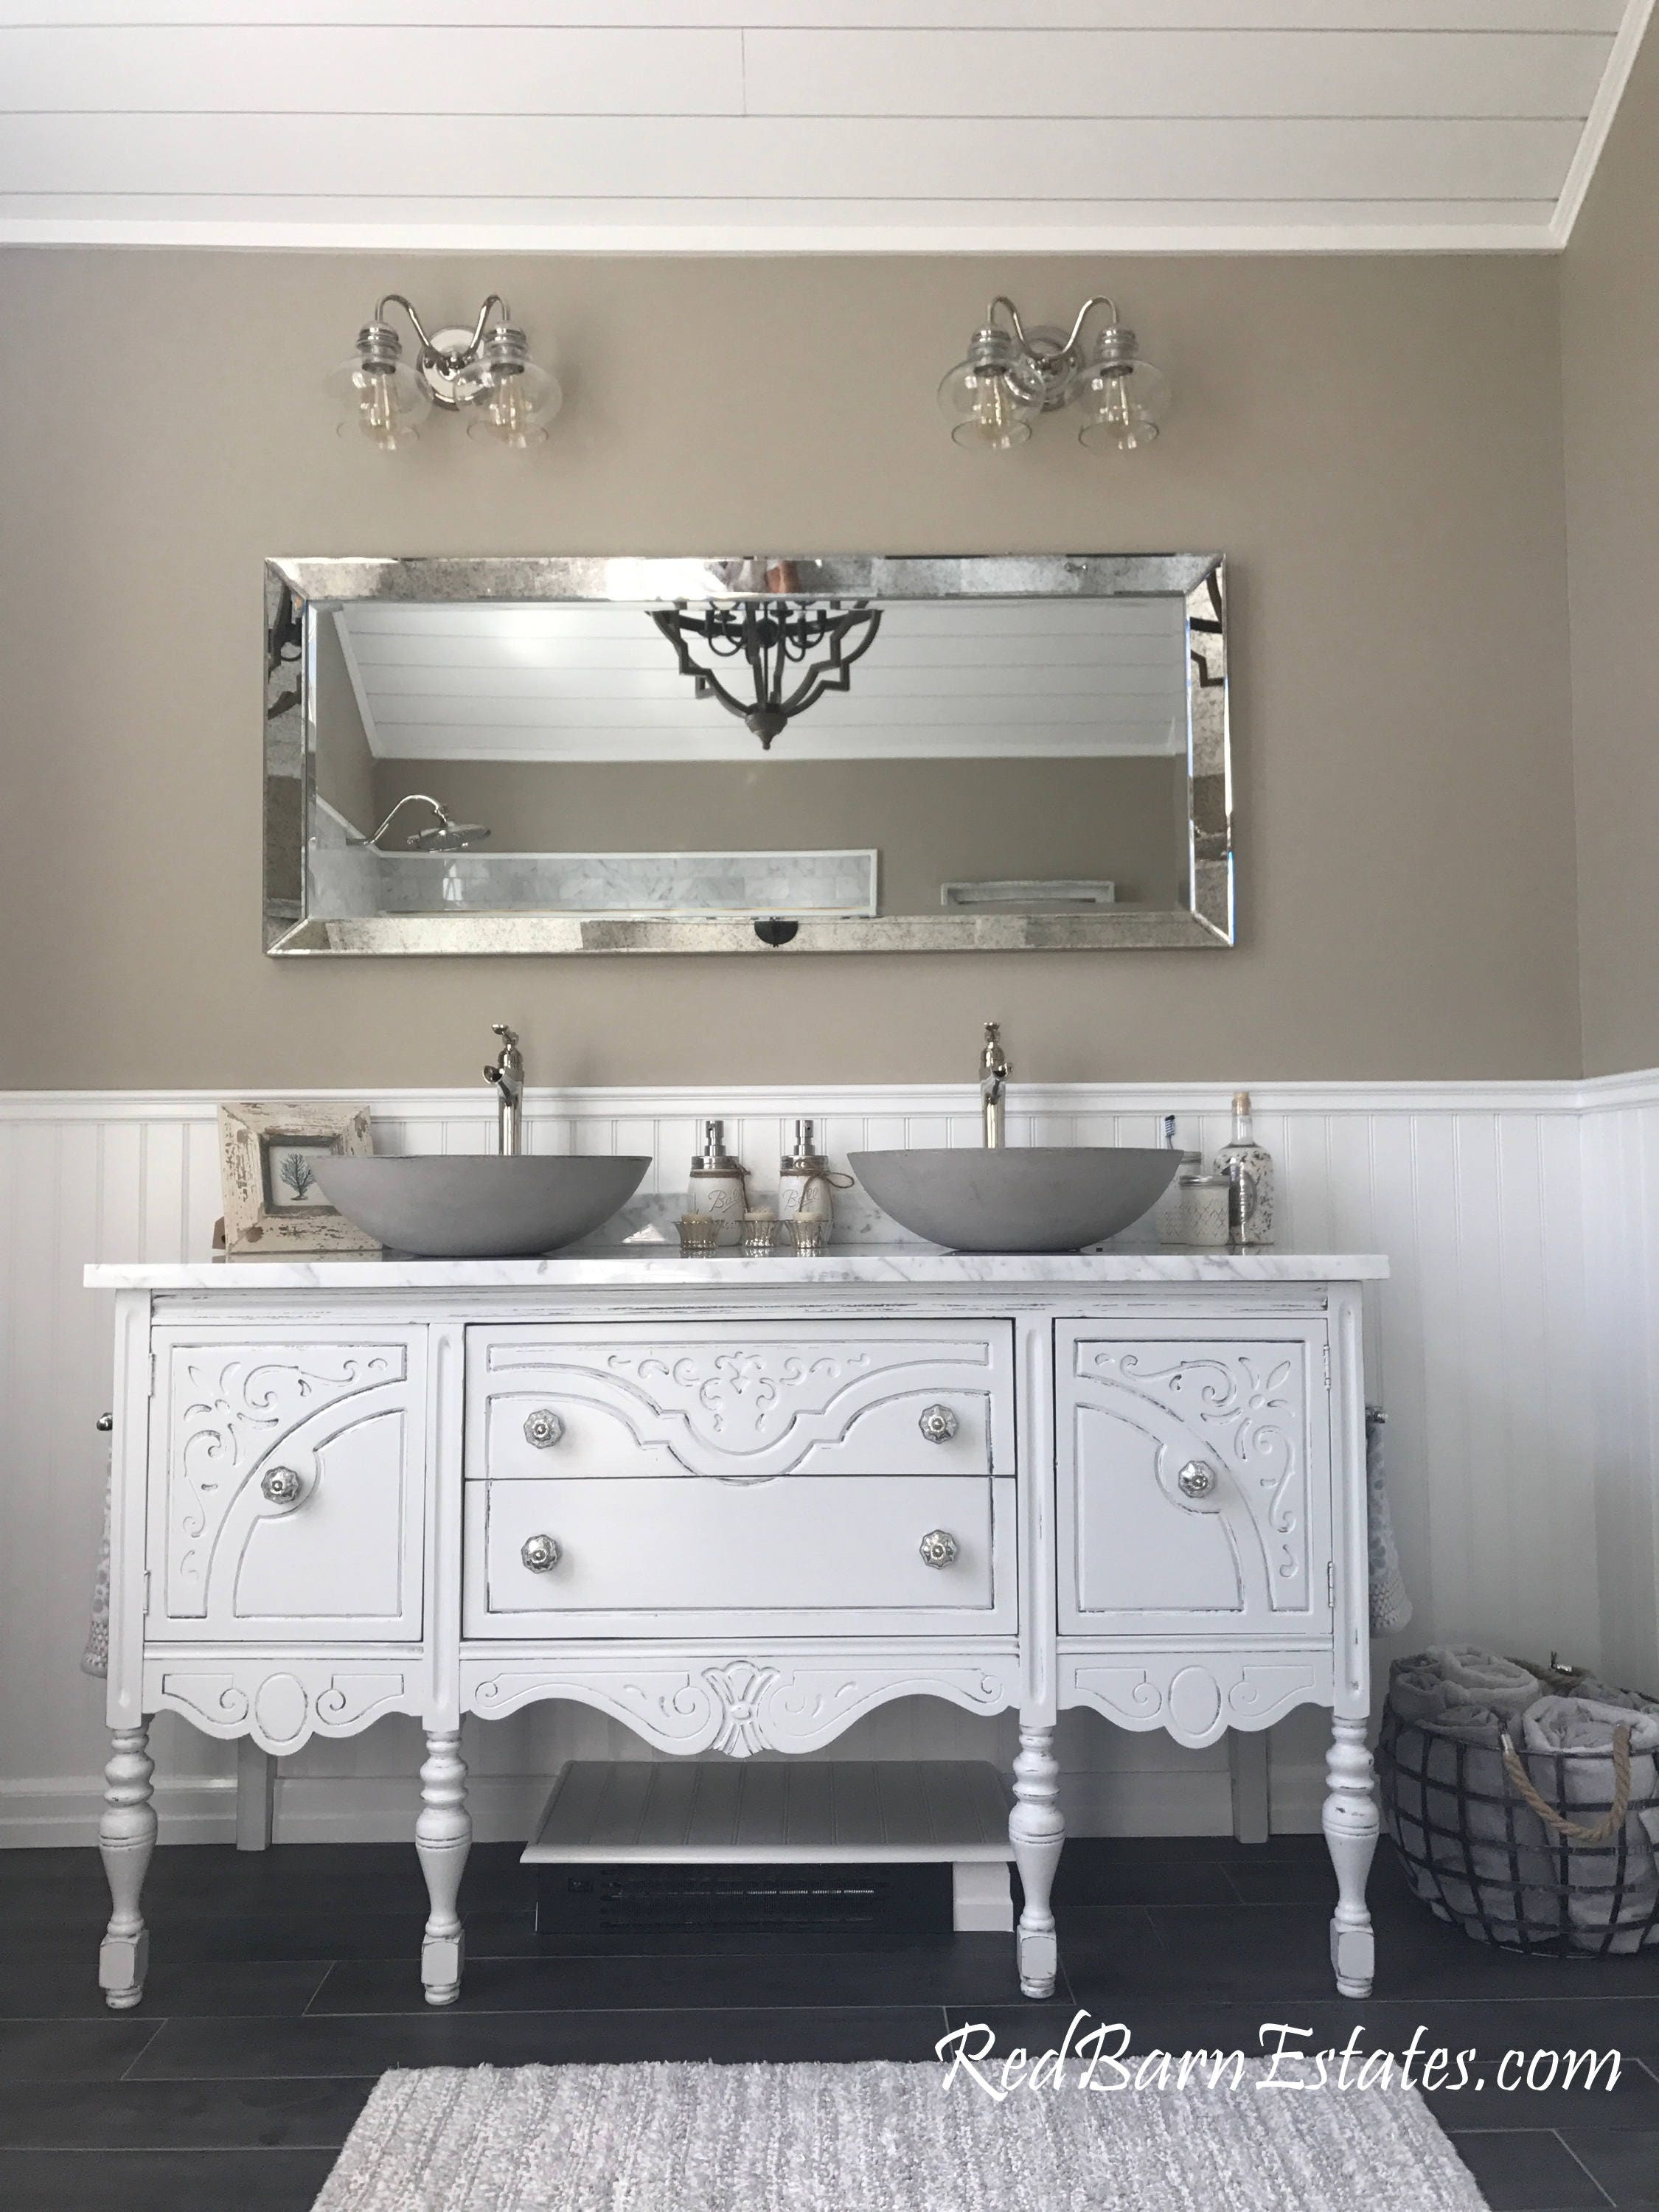 elegant full lovely of style inspirational great size awesome cabinet bathroom vanity farmhouse home best interior design farmhouses farm sink